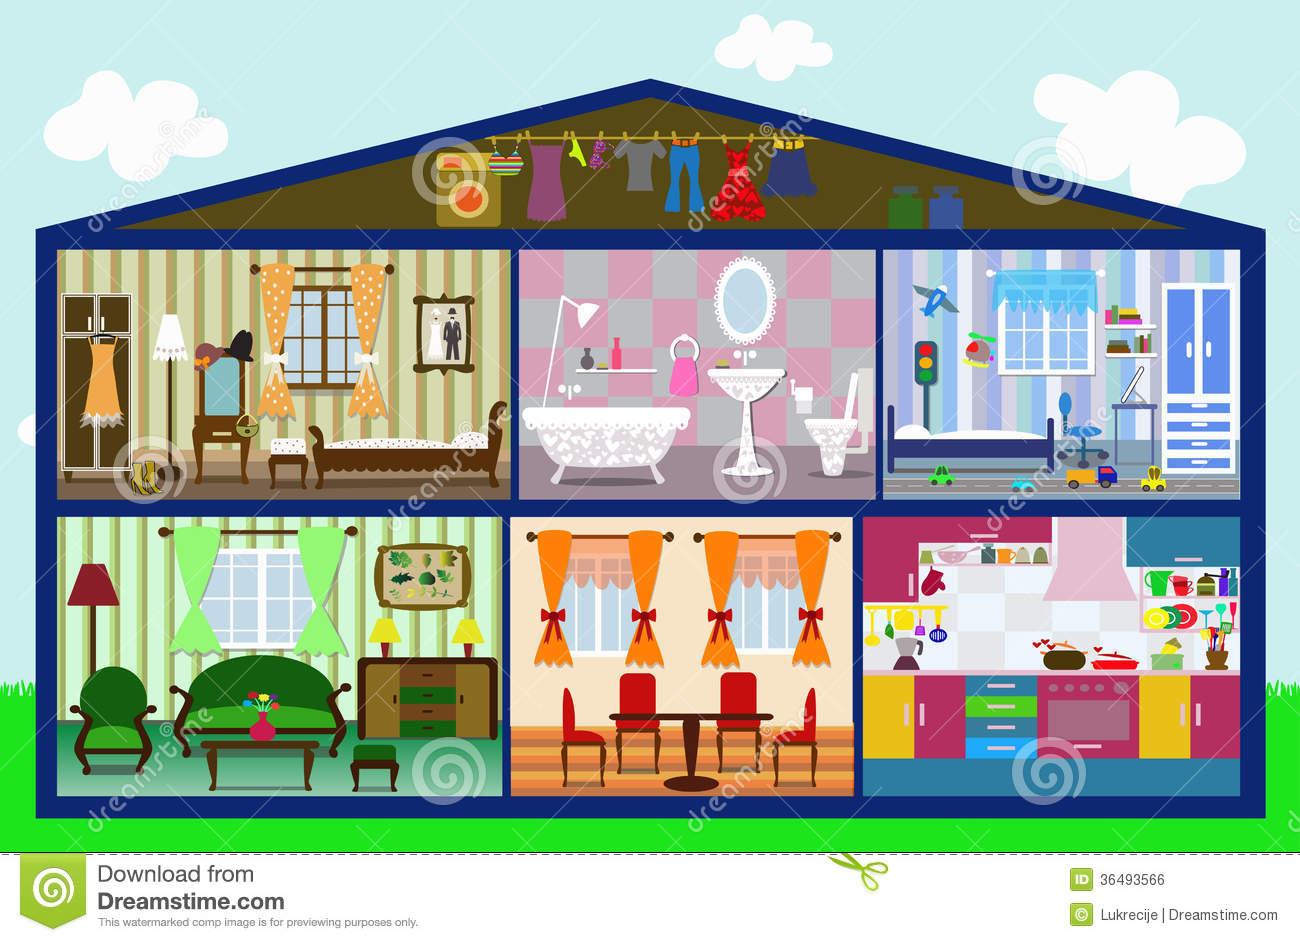 Cute house cut royalty free stock image image 36493566 for Cute house interior